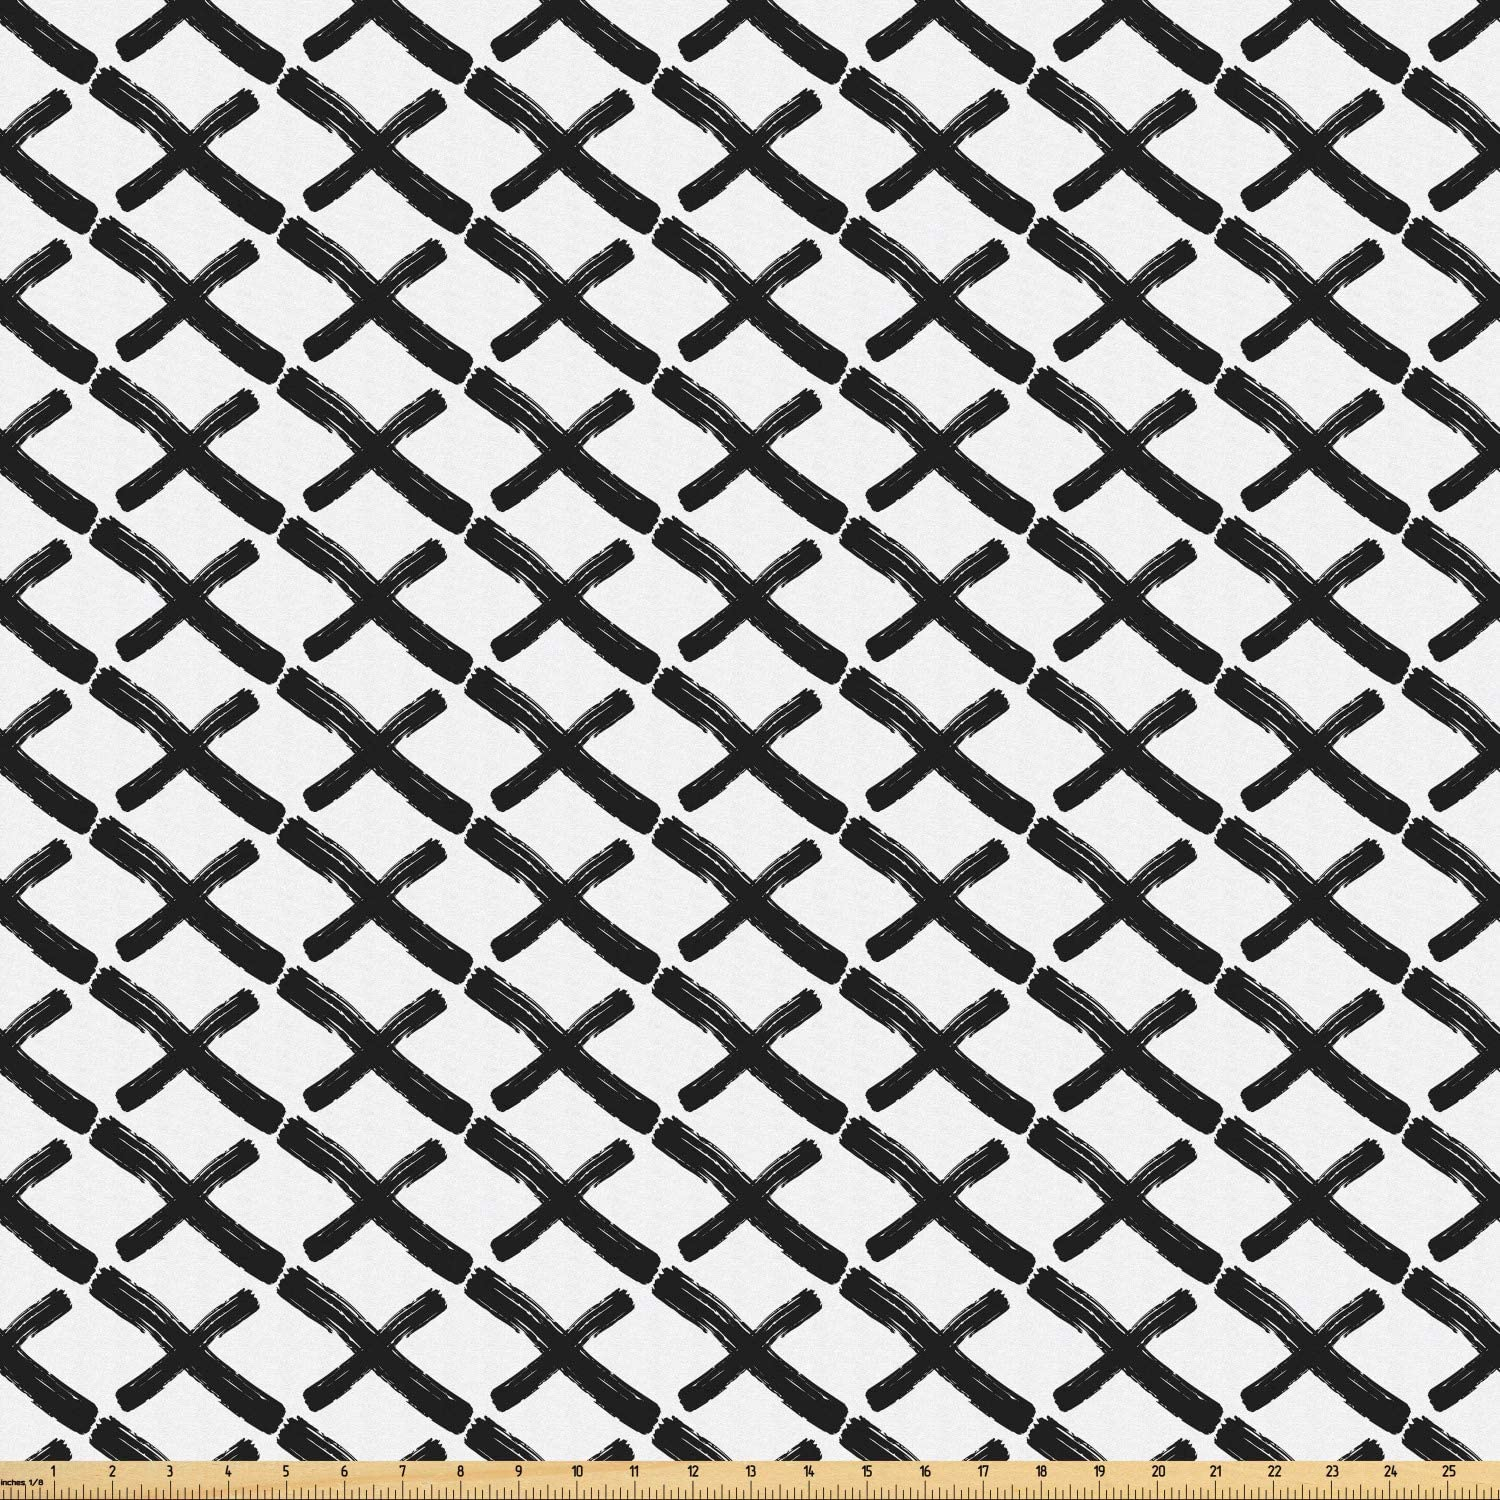 Ambesonne Modern Fabric by The Yard, Math Geometry Inspired Minimalist Design with Brushstrokes Like Art Print, Microfiber Fabric for Arts and Crafts Textiles & Decor, Charcoal Grey White